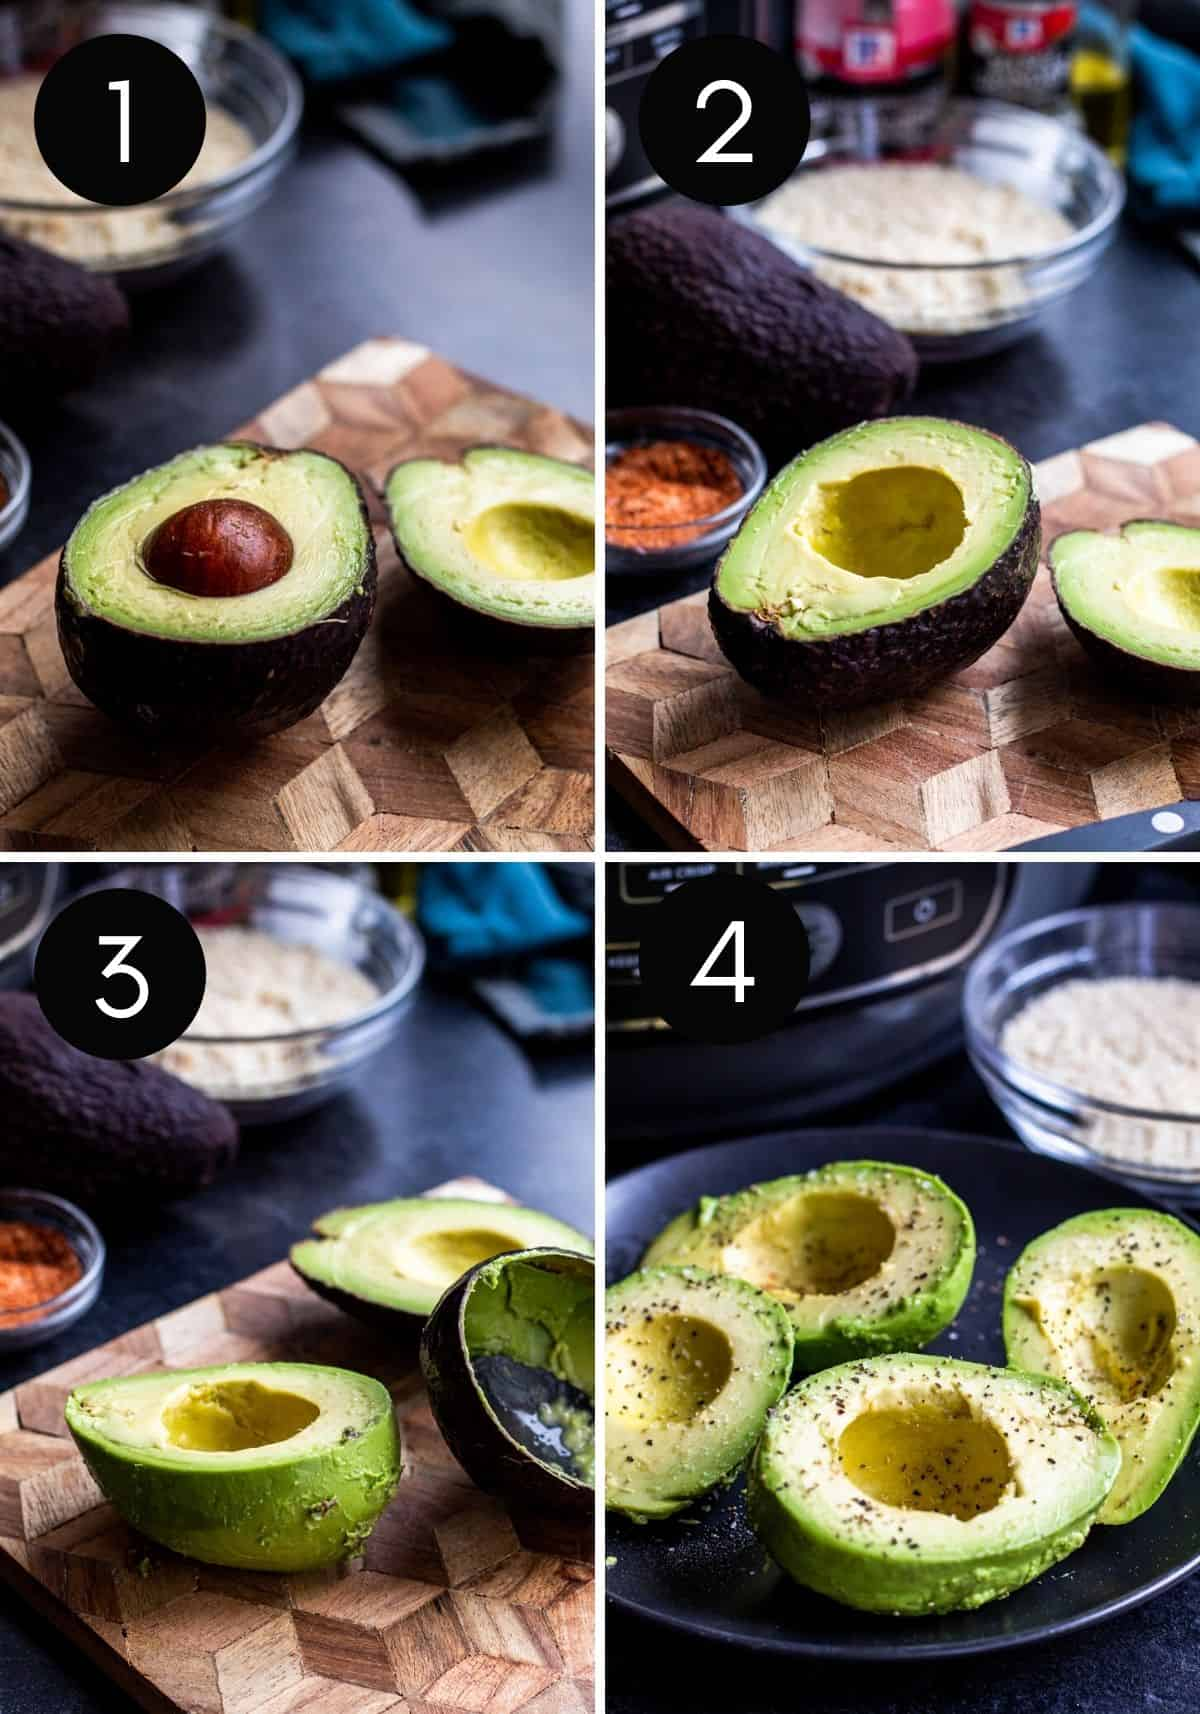 Four prep images of avocados being slices and peeled.